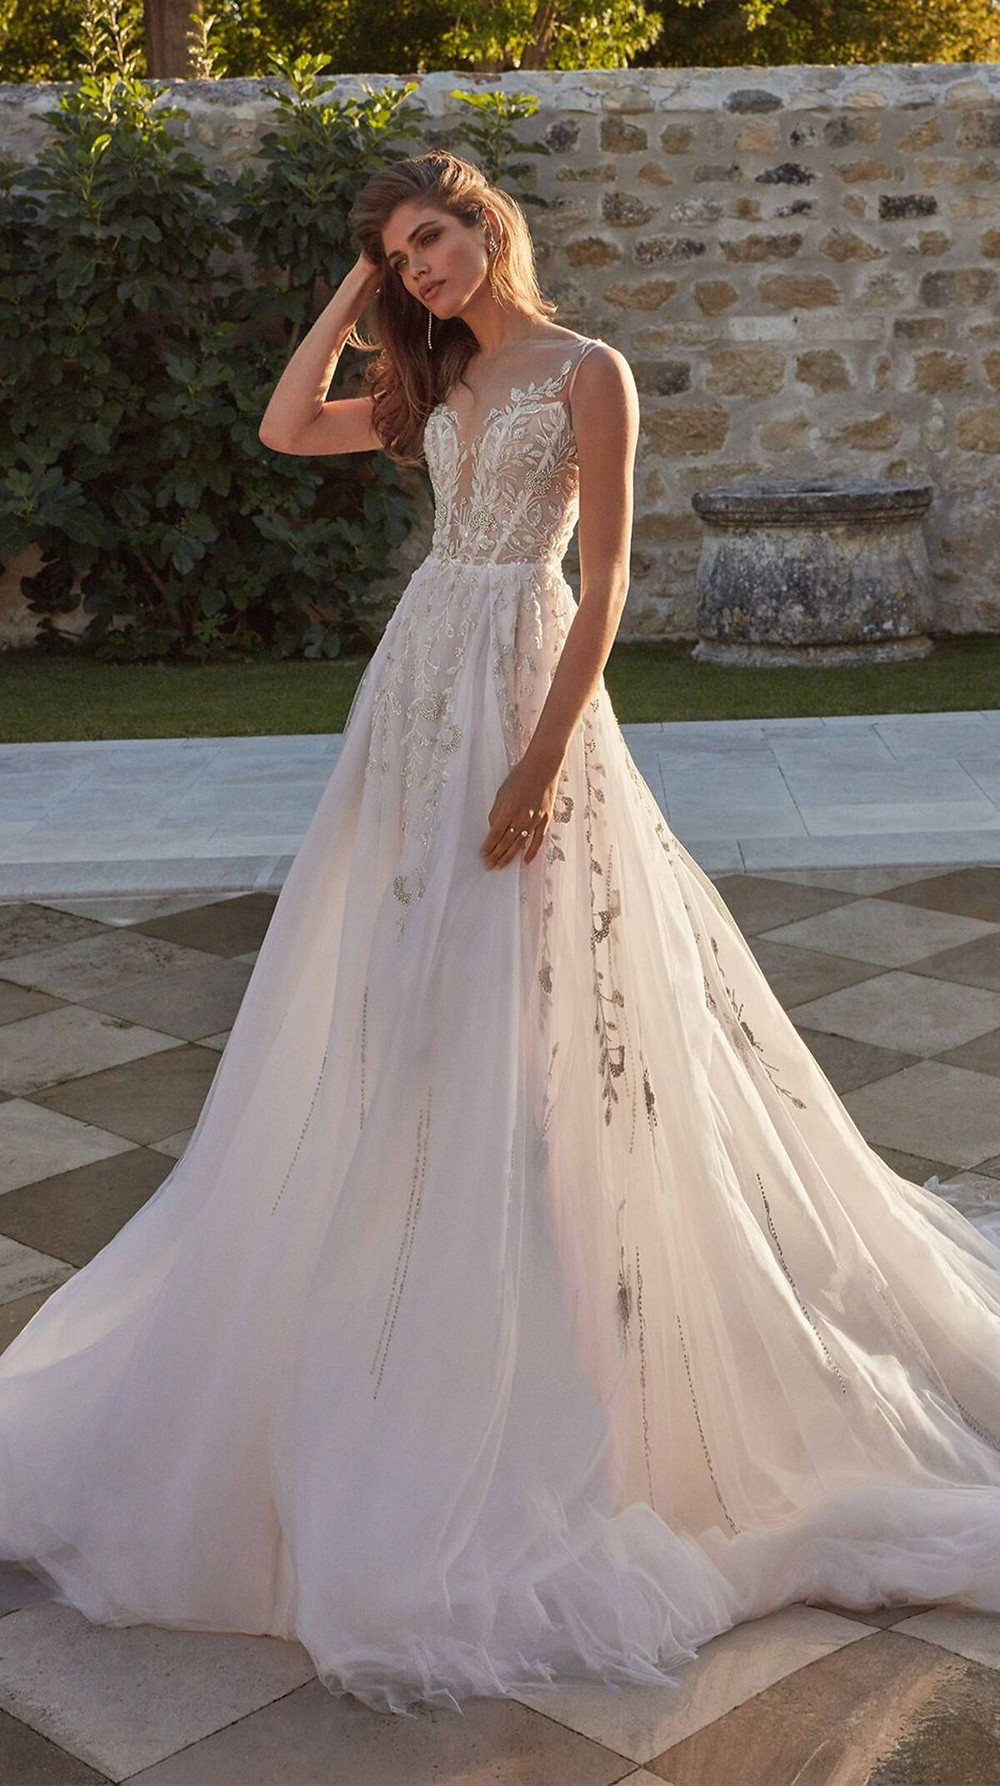 Elaborate embroidery trail down this ice silver and pink A-line ball gown wedding dress with a plunging neckline from the top of the shoulders to the bottom of the full tulle skirt for a one-of-a-kind dress that reflects inner and outer beauty